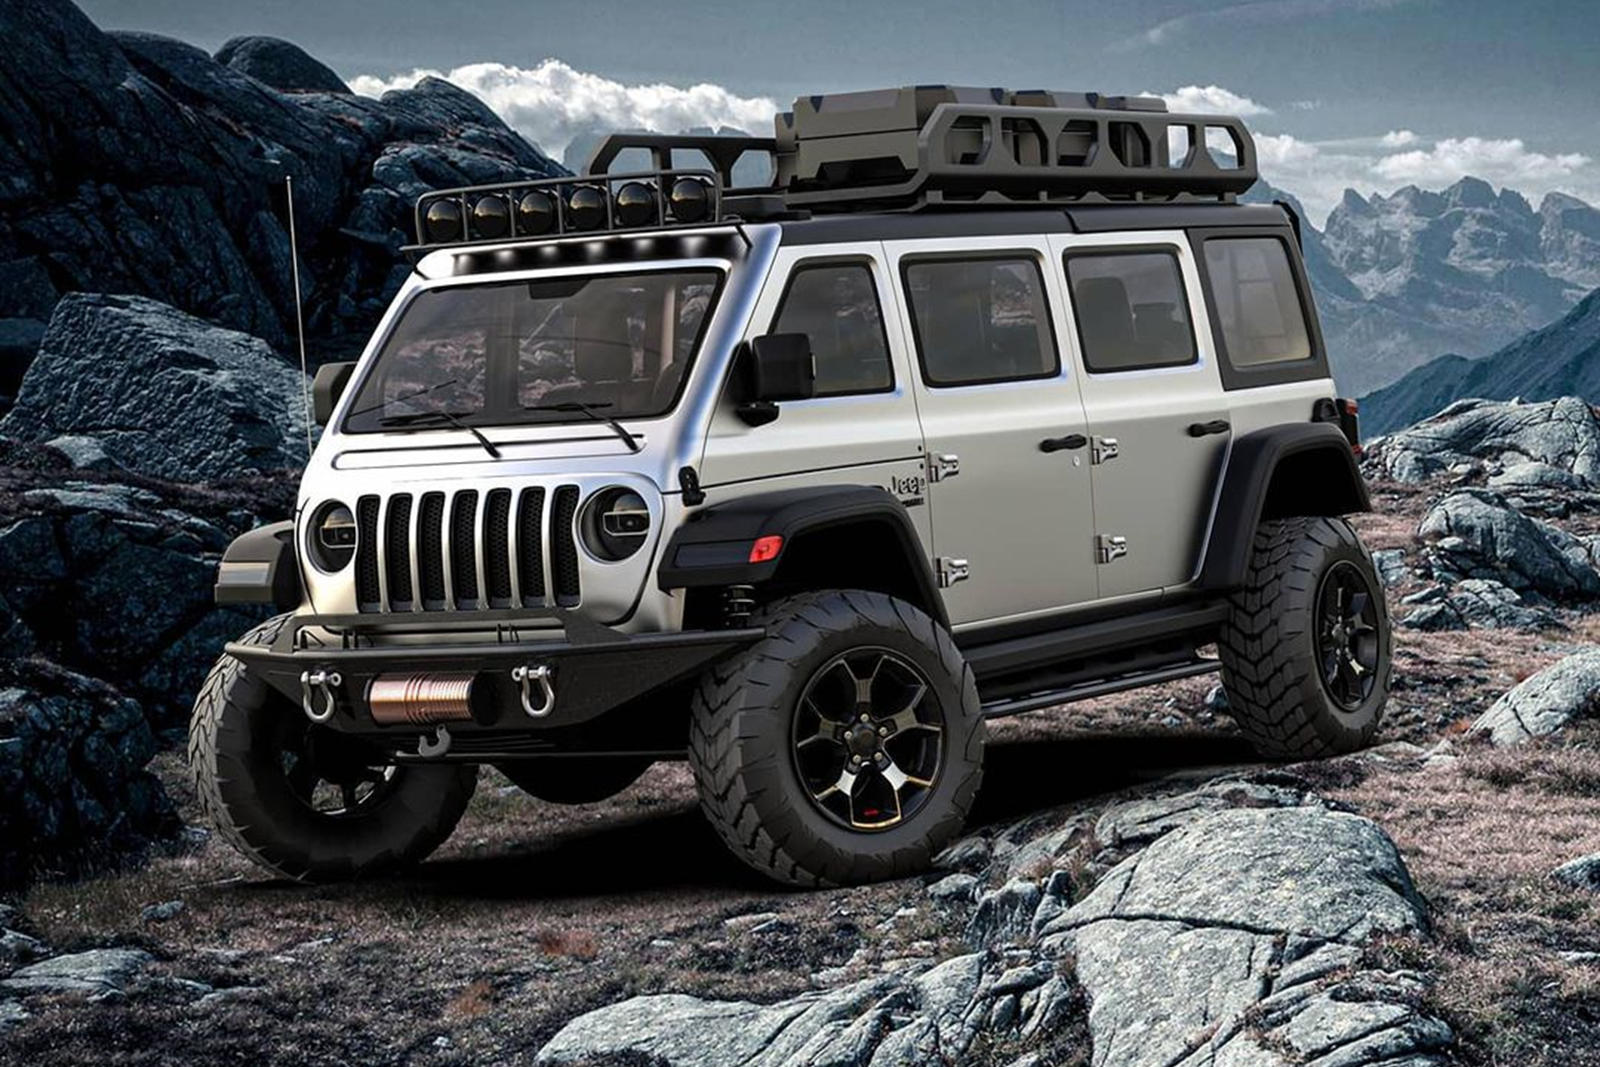 Jeep Cherokee, Renegade and Compass S models set to